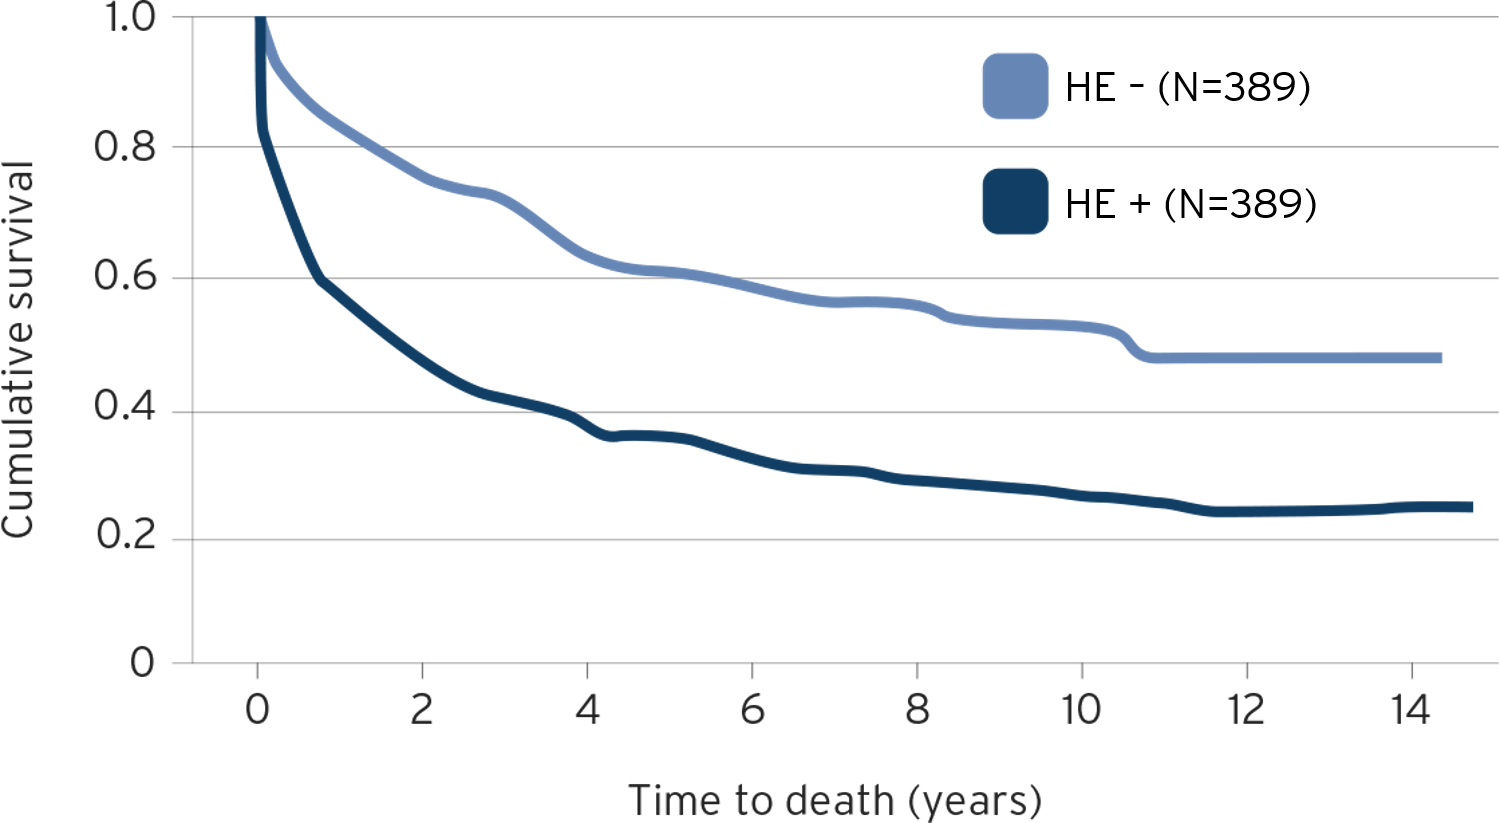 Kaplan-Meier plot for survival of patients with liver disease from diagnosis of HE relative to matched liver disease control